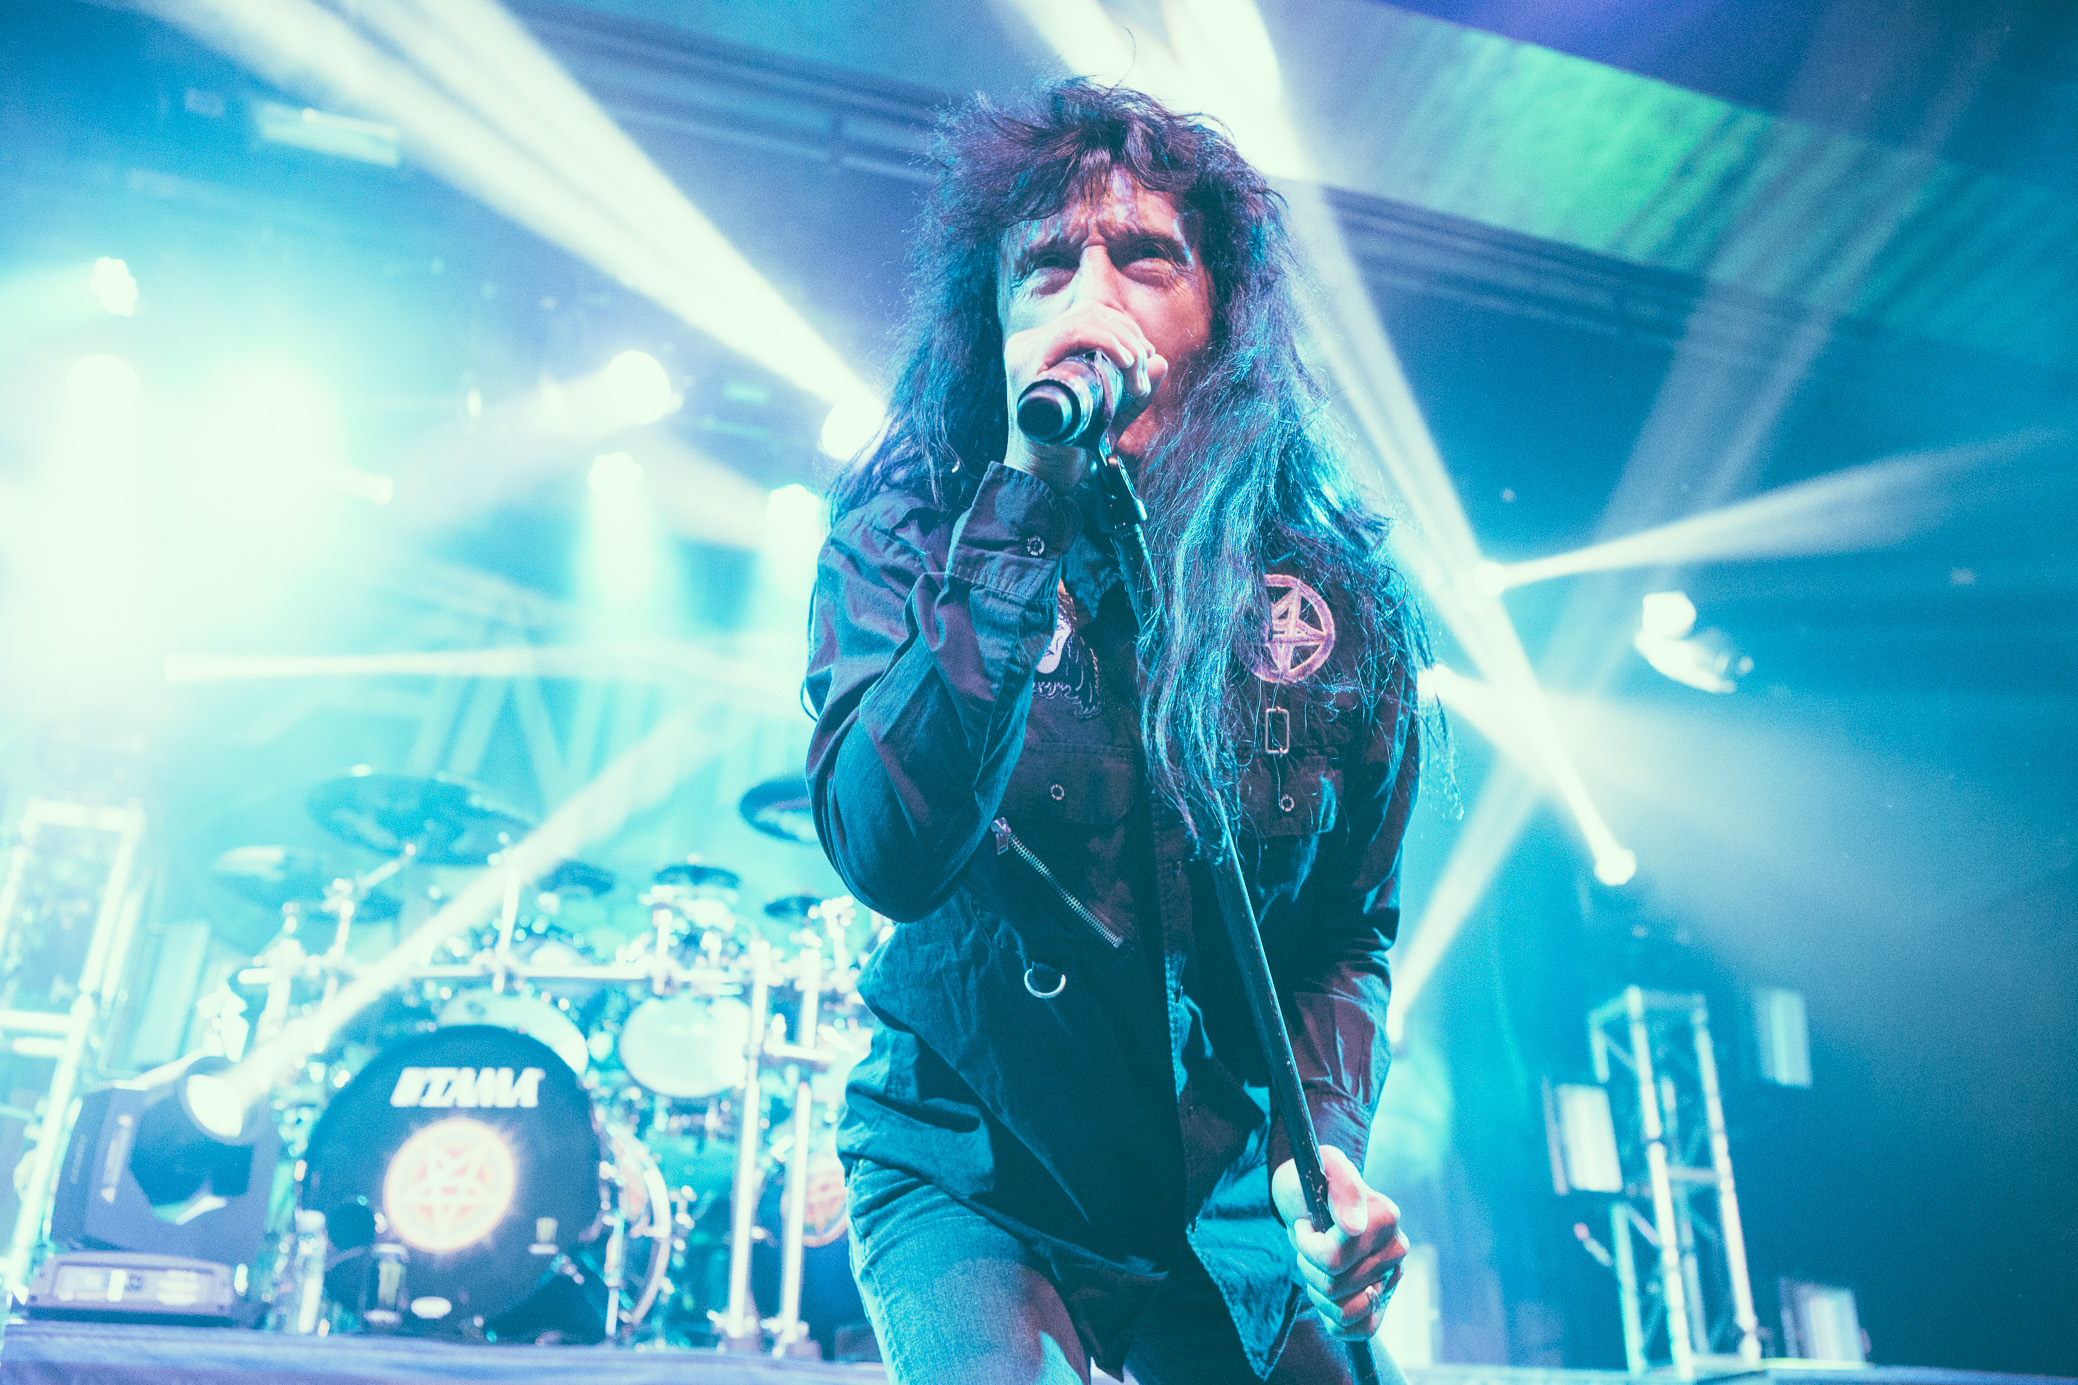 Joey Belladonna of Anthrax performs at Iron City in Birmingham, Alabama on February 6th, 2018. (Photo by David A. Smith/DSmithScenes)